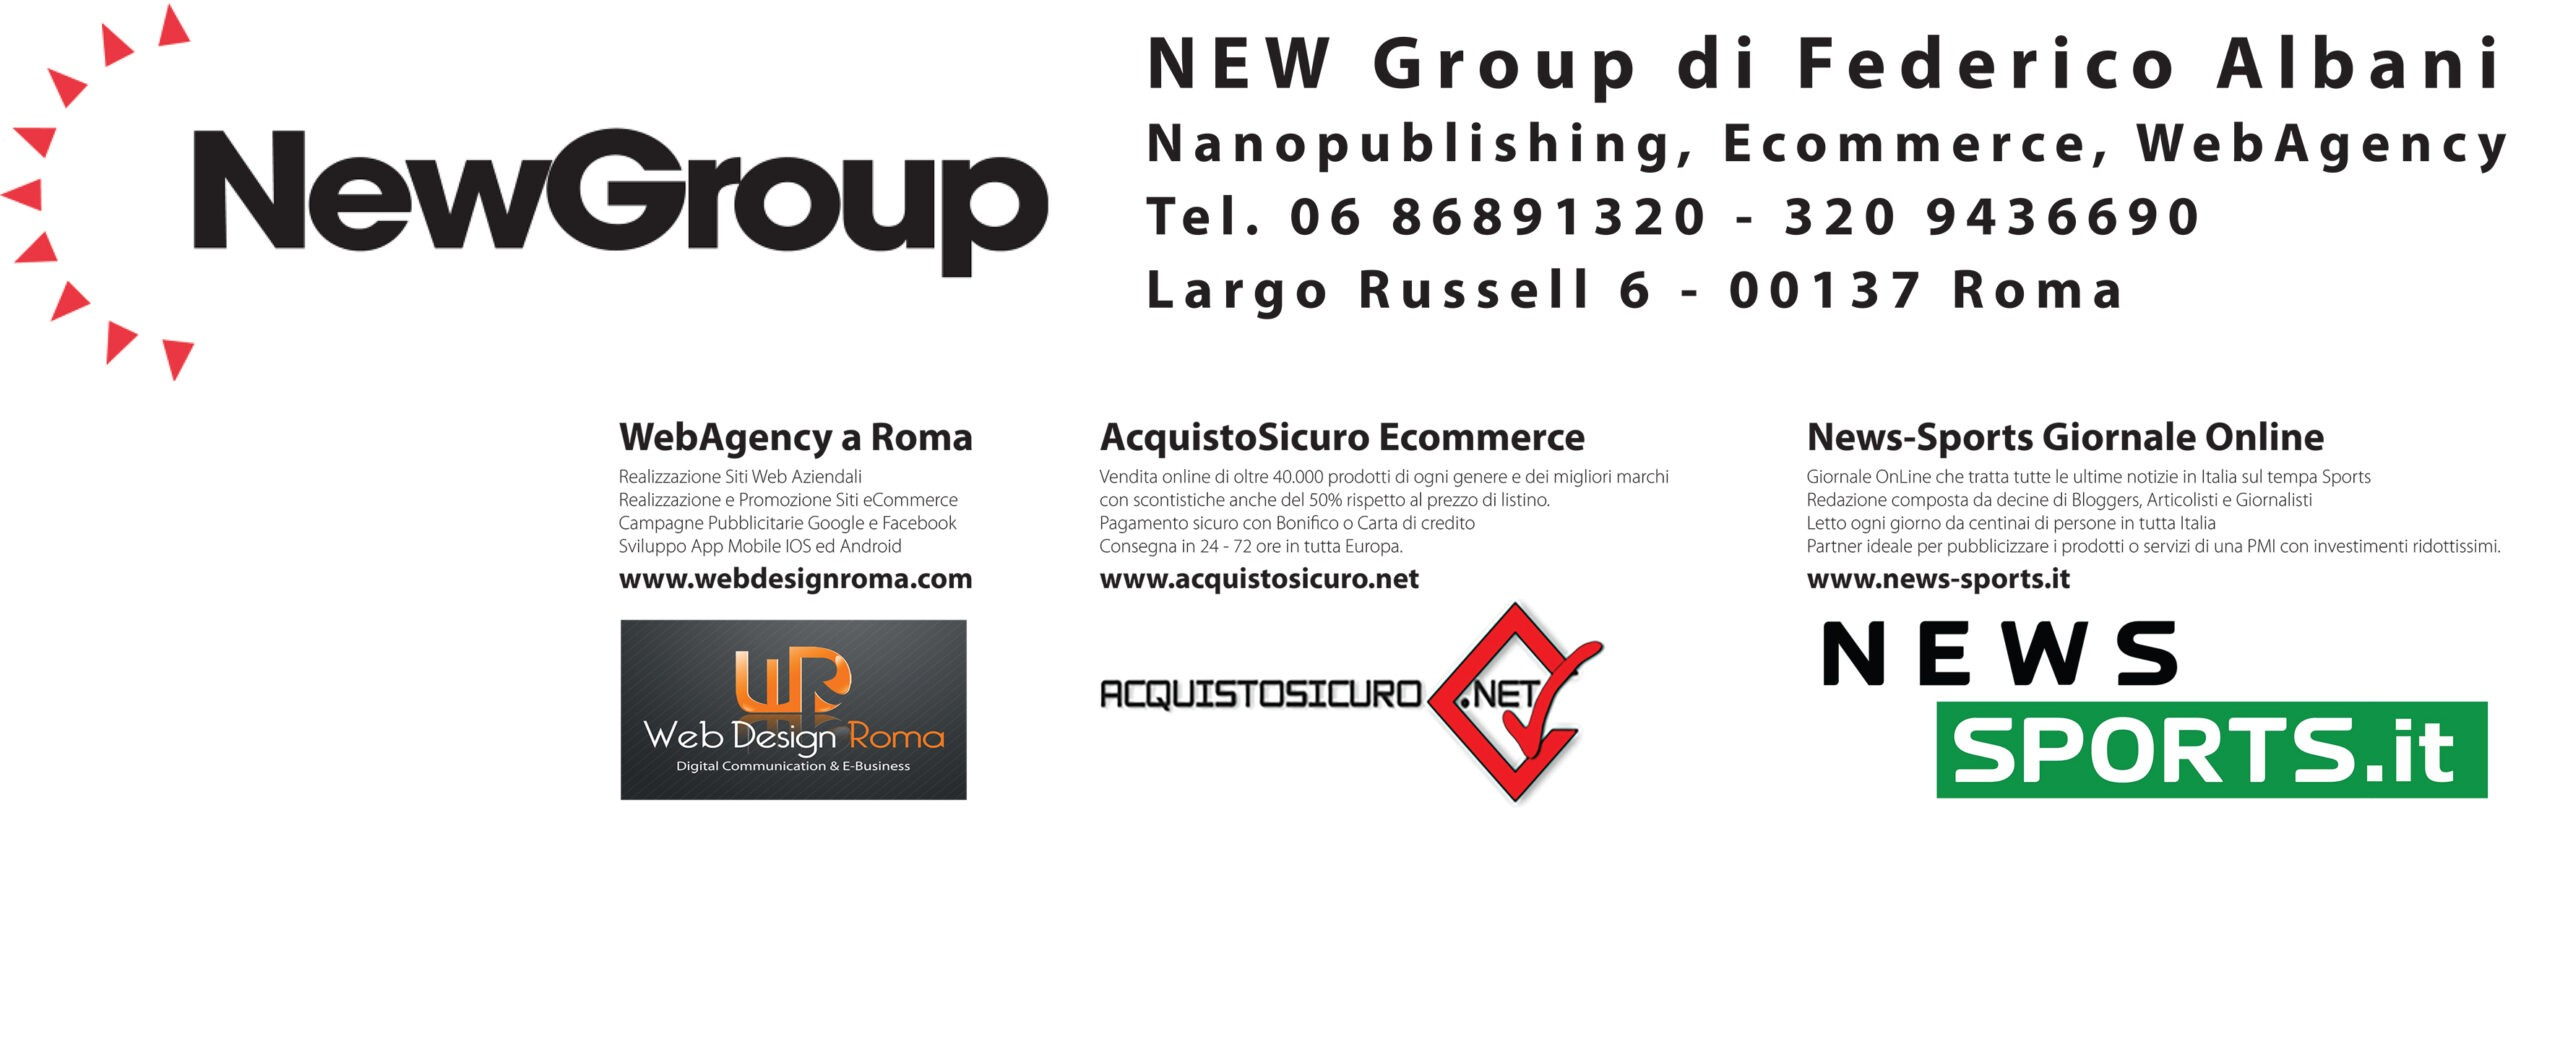 NEW Group di Federico Albani